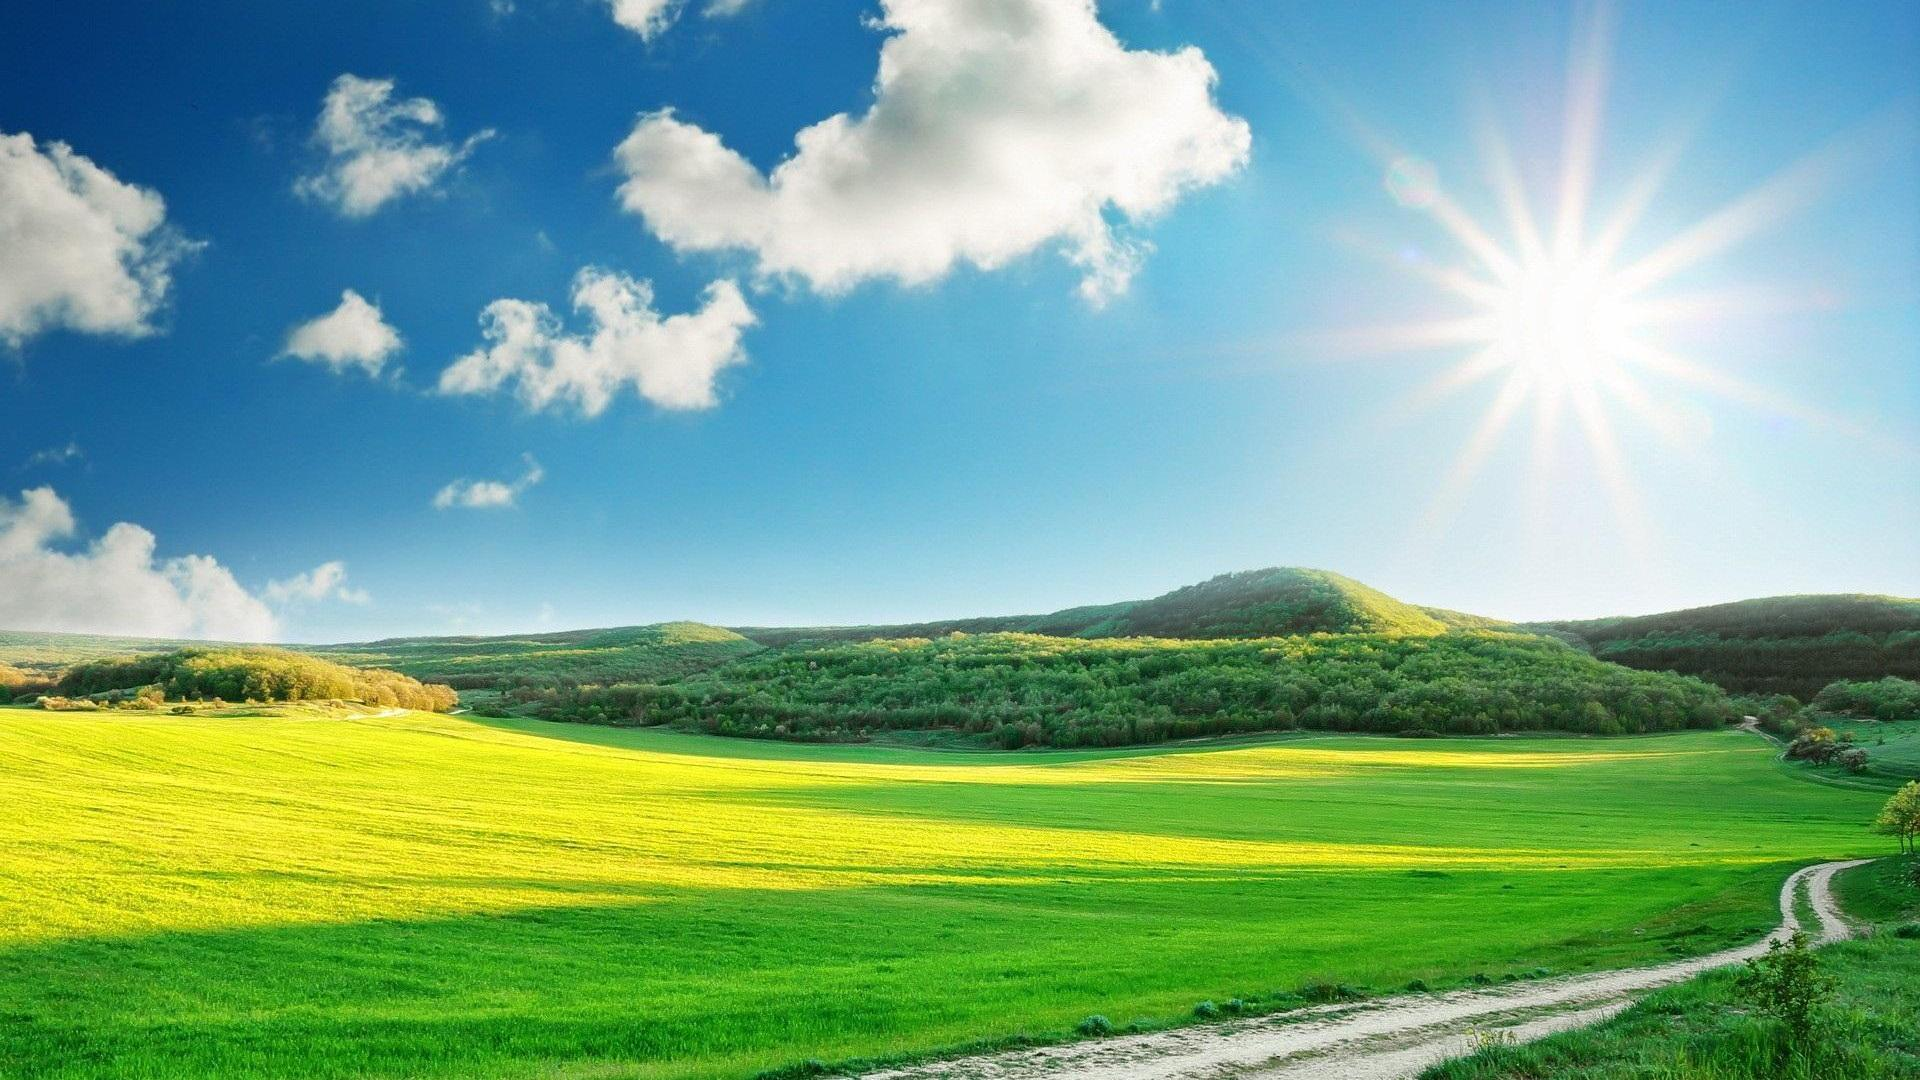 Sunny Day Wallpaper